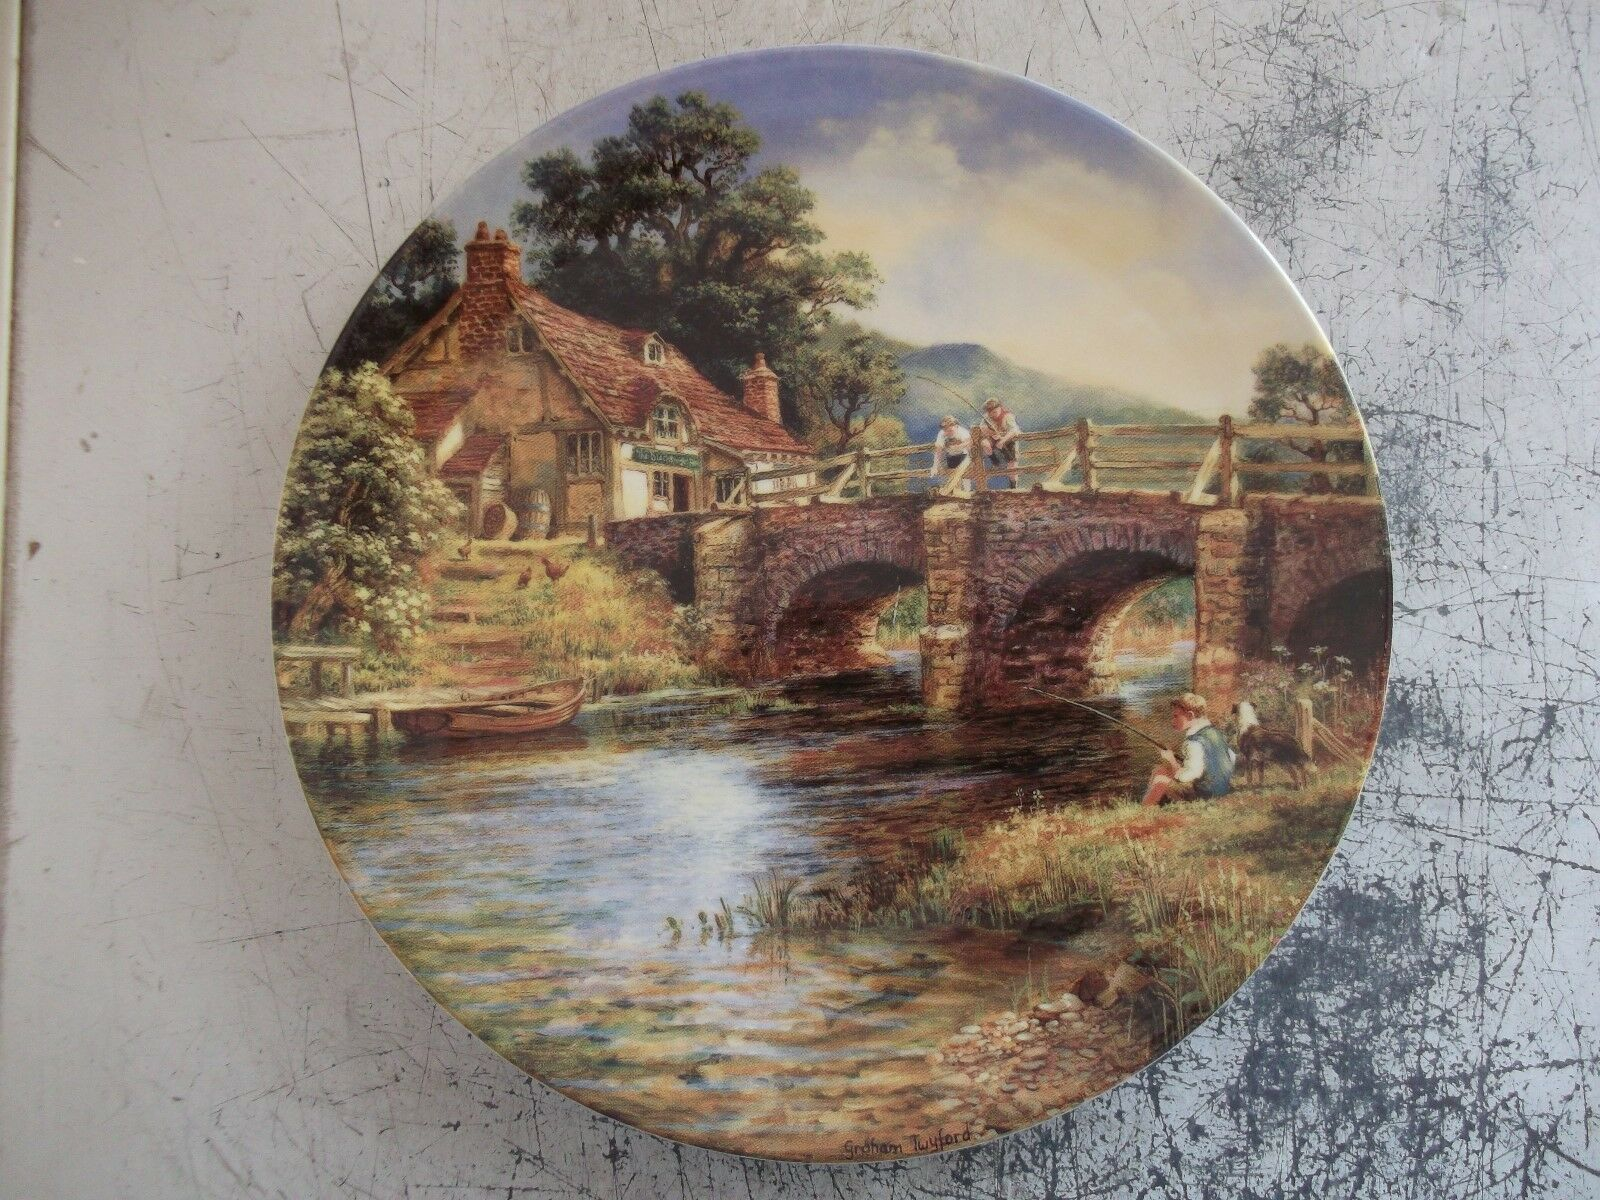 Rare danbury mint down by the river collector plate.